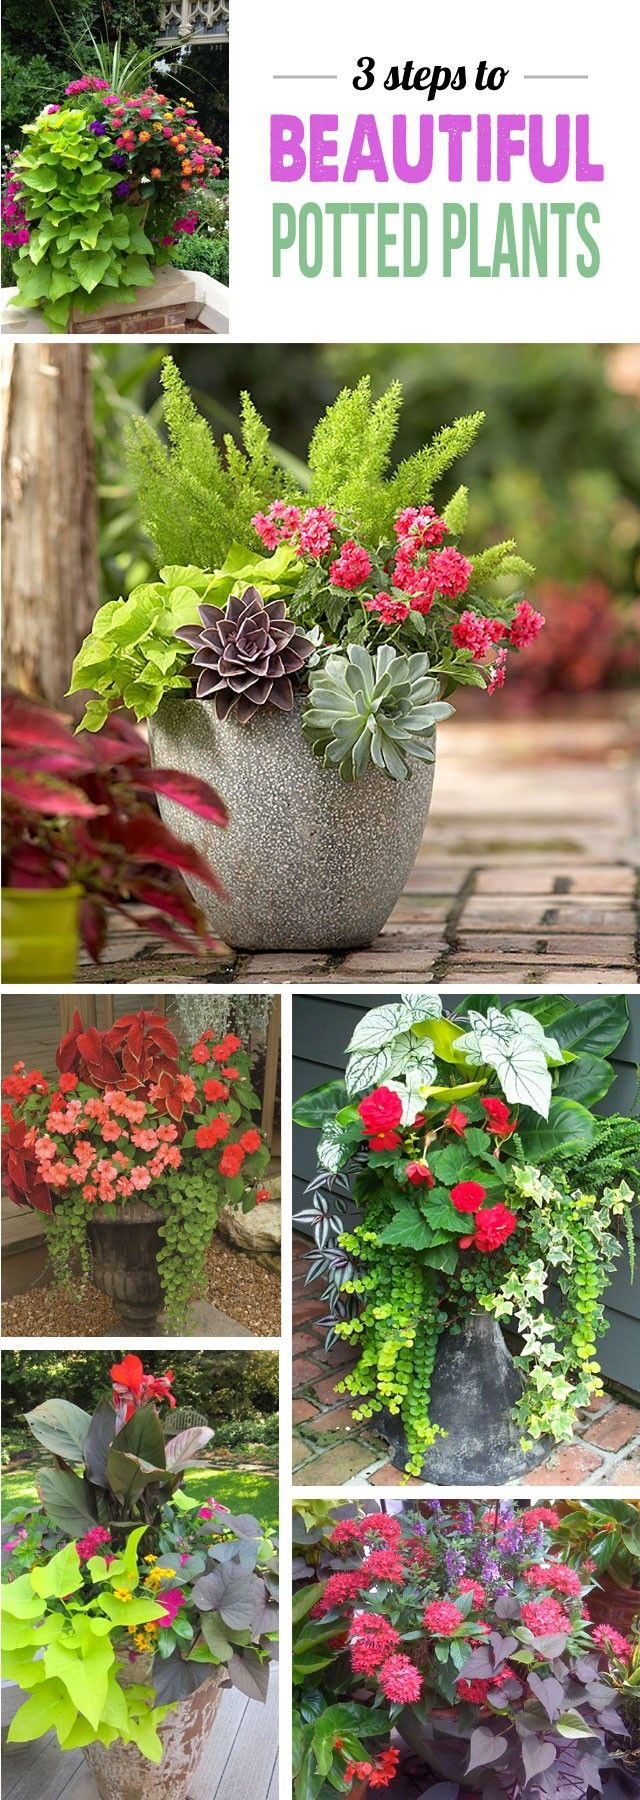 Garden Container Ideas stone heart garden decorations Great Tips For Making Stunning Potted Plant Arrangements Cant Wait To Add Some